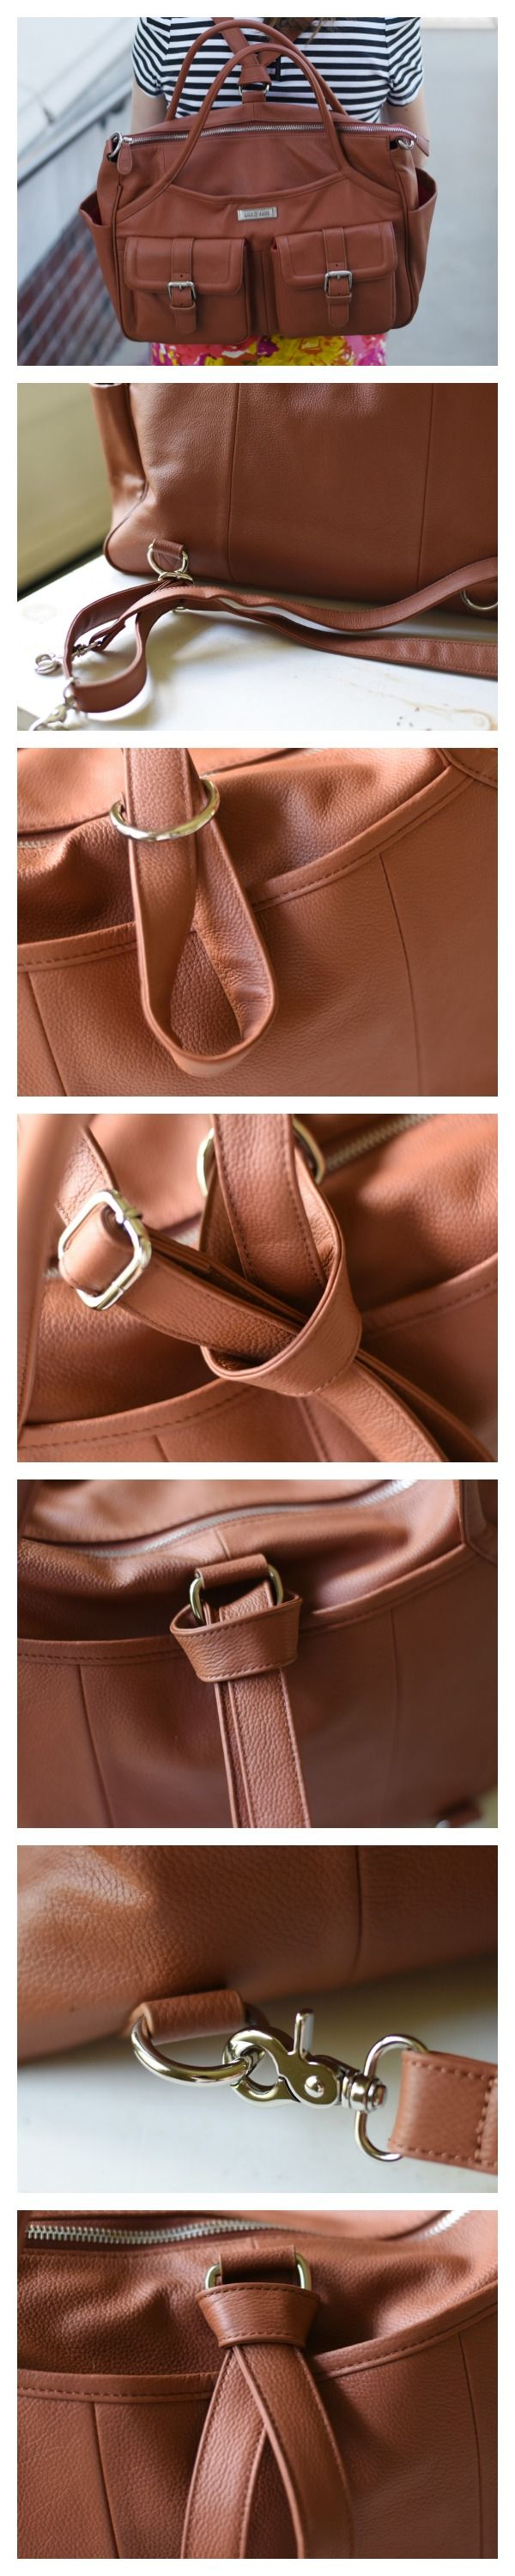 A Backback Diaper Bag - brilliant!!  How to Convert a Lily Jade Diaper Bag to the Backpack Carry | Feathers in Our Nest